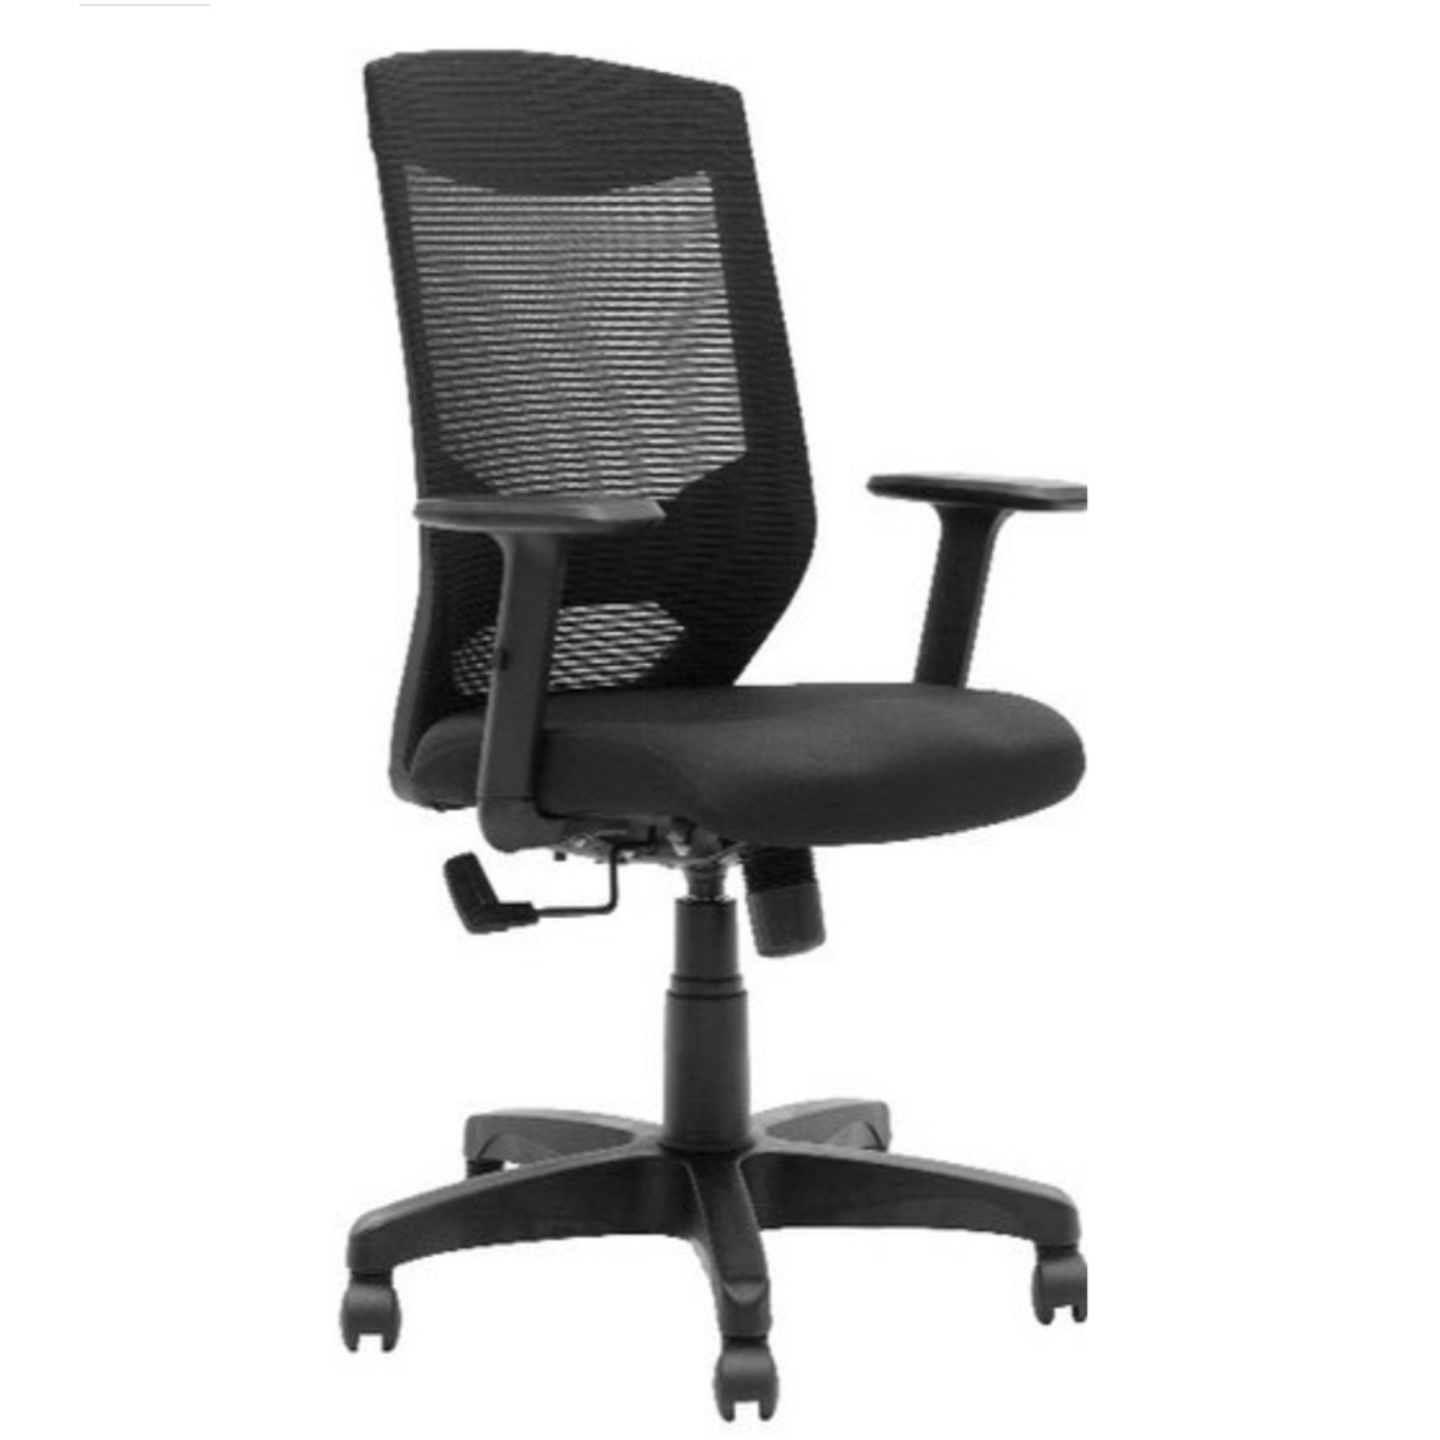 Mid Back Mesh Office Chair WANG MB